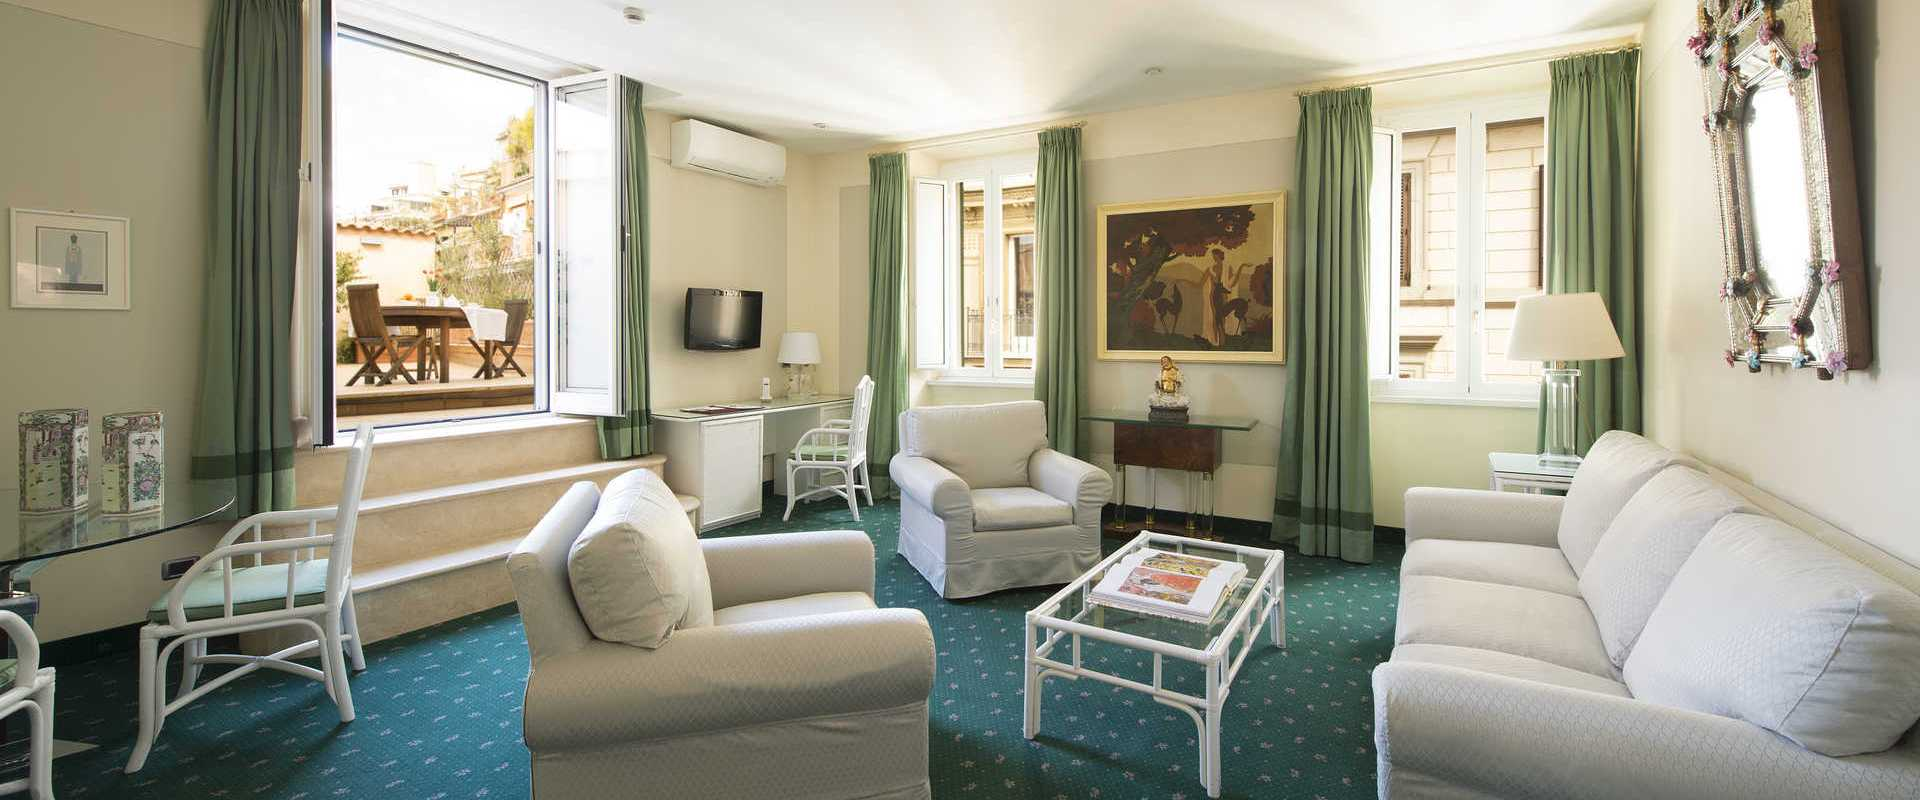 Suite with Terrace 3 Star Hotel Gregoriana in the Centre of Rome